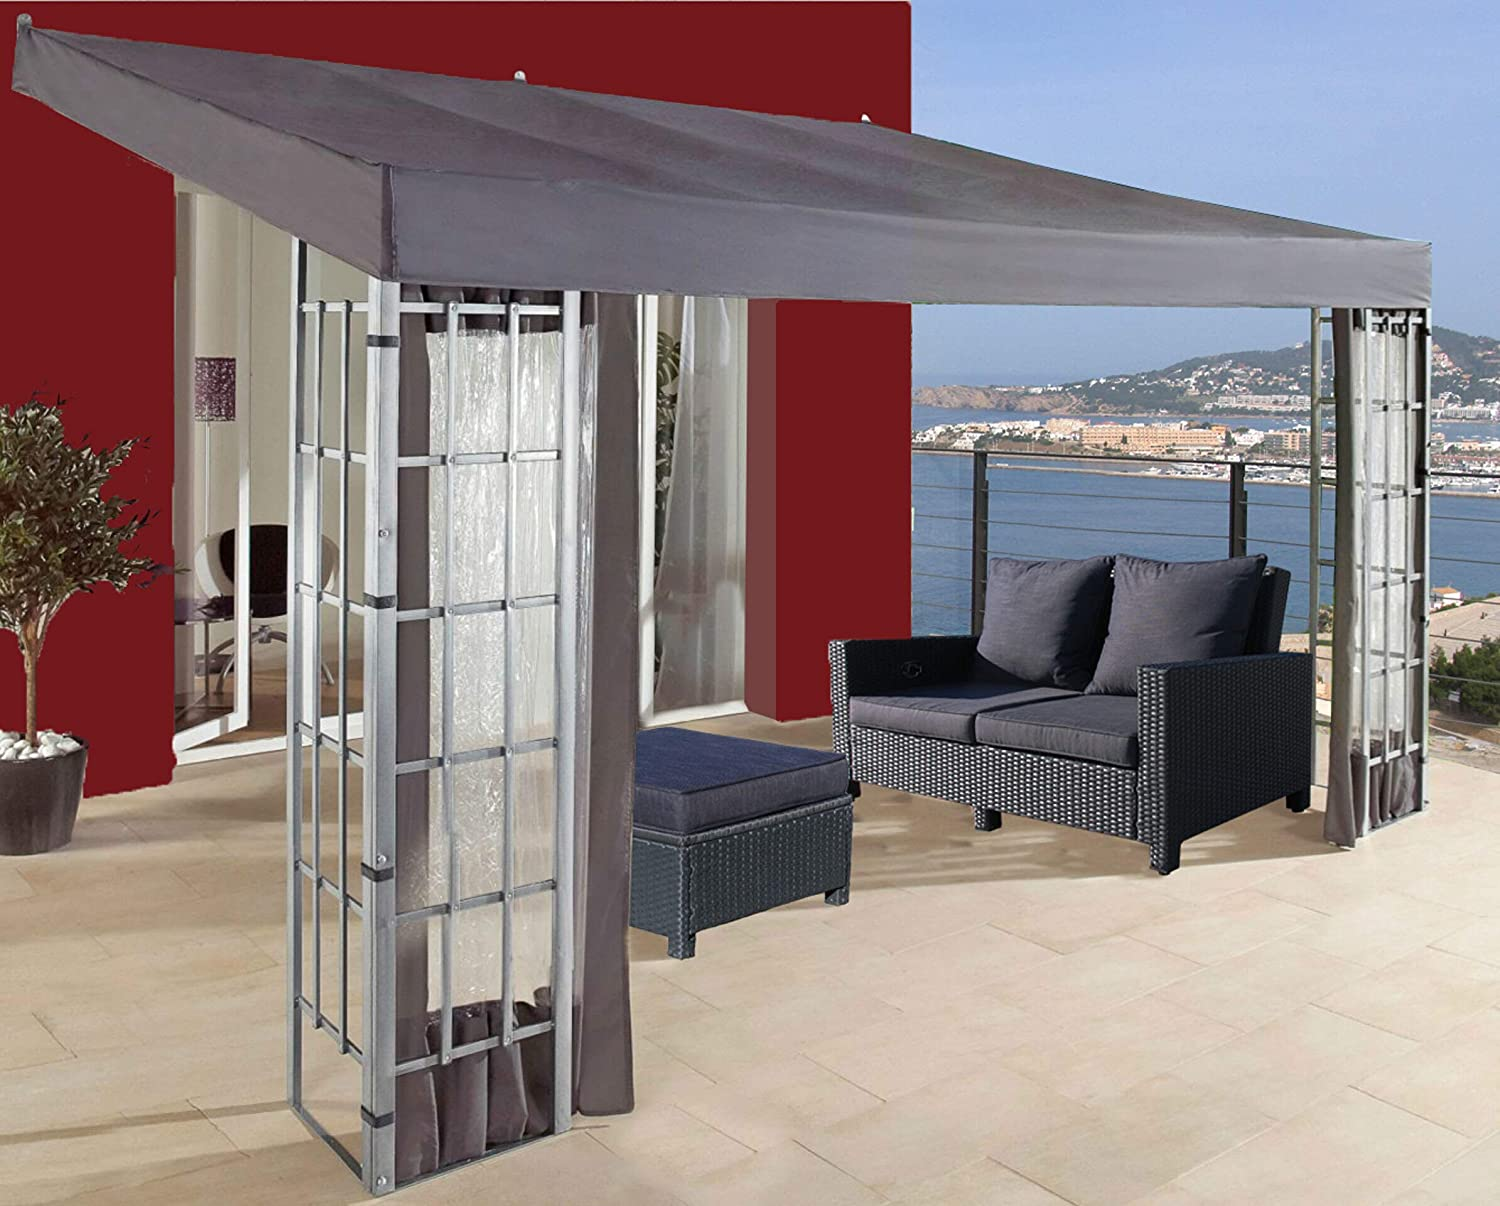 QUICK STAR 3 Paredes Laterales para Tienda de Pared Pergola 3x4m ...